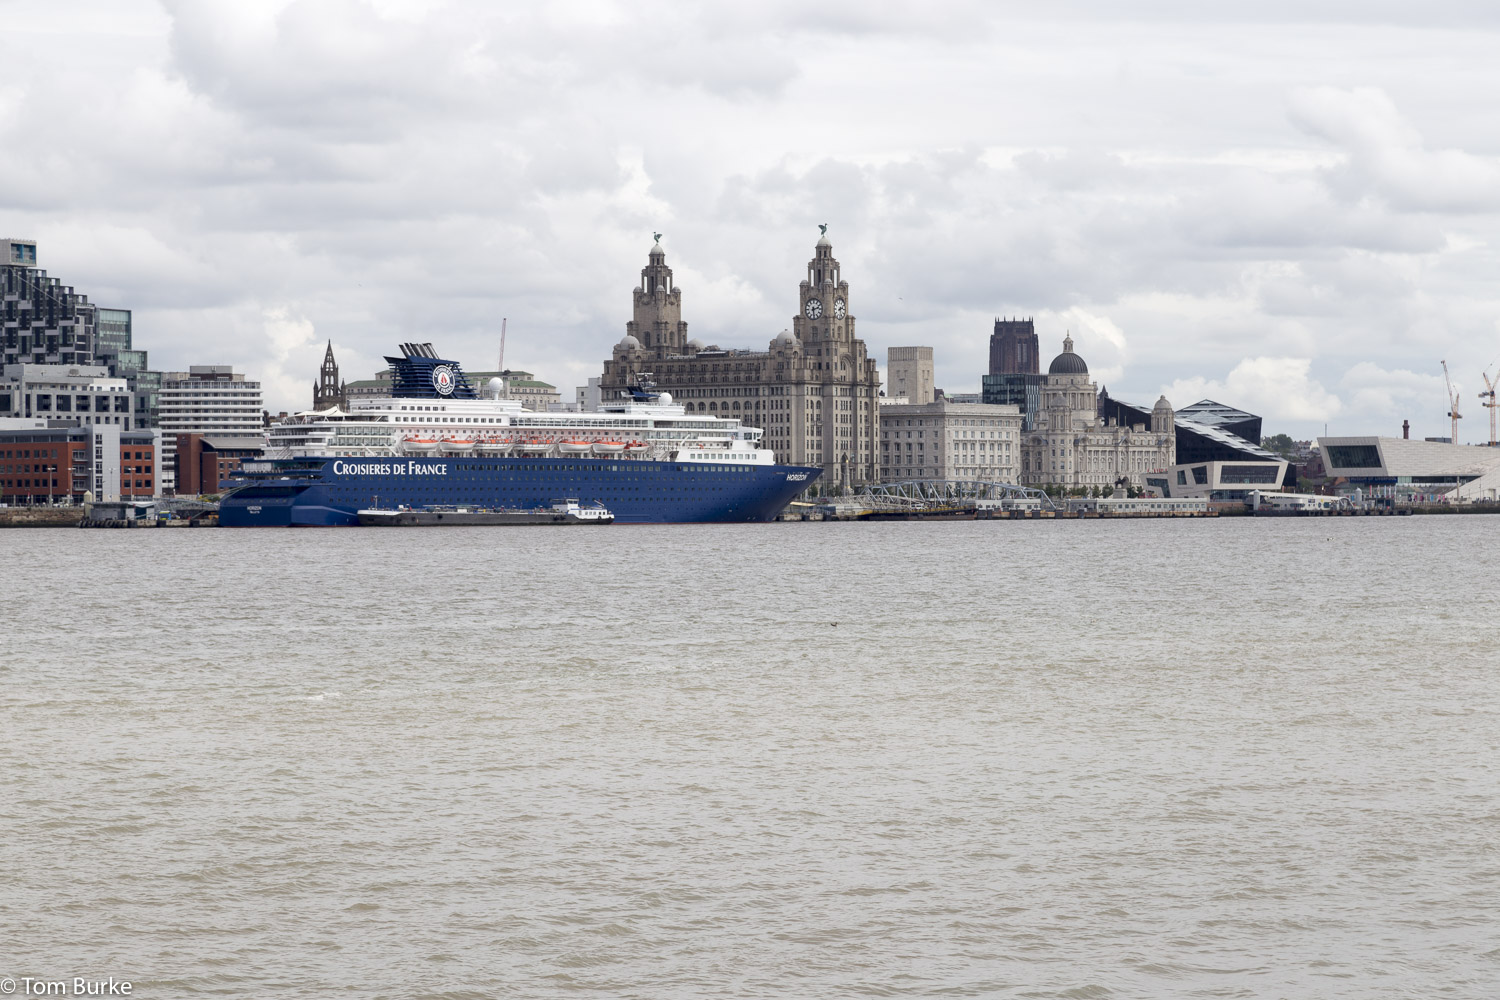 Liverpool Cruise terminal1310